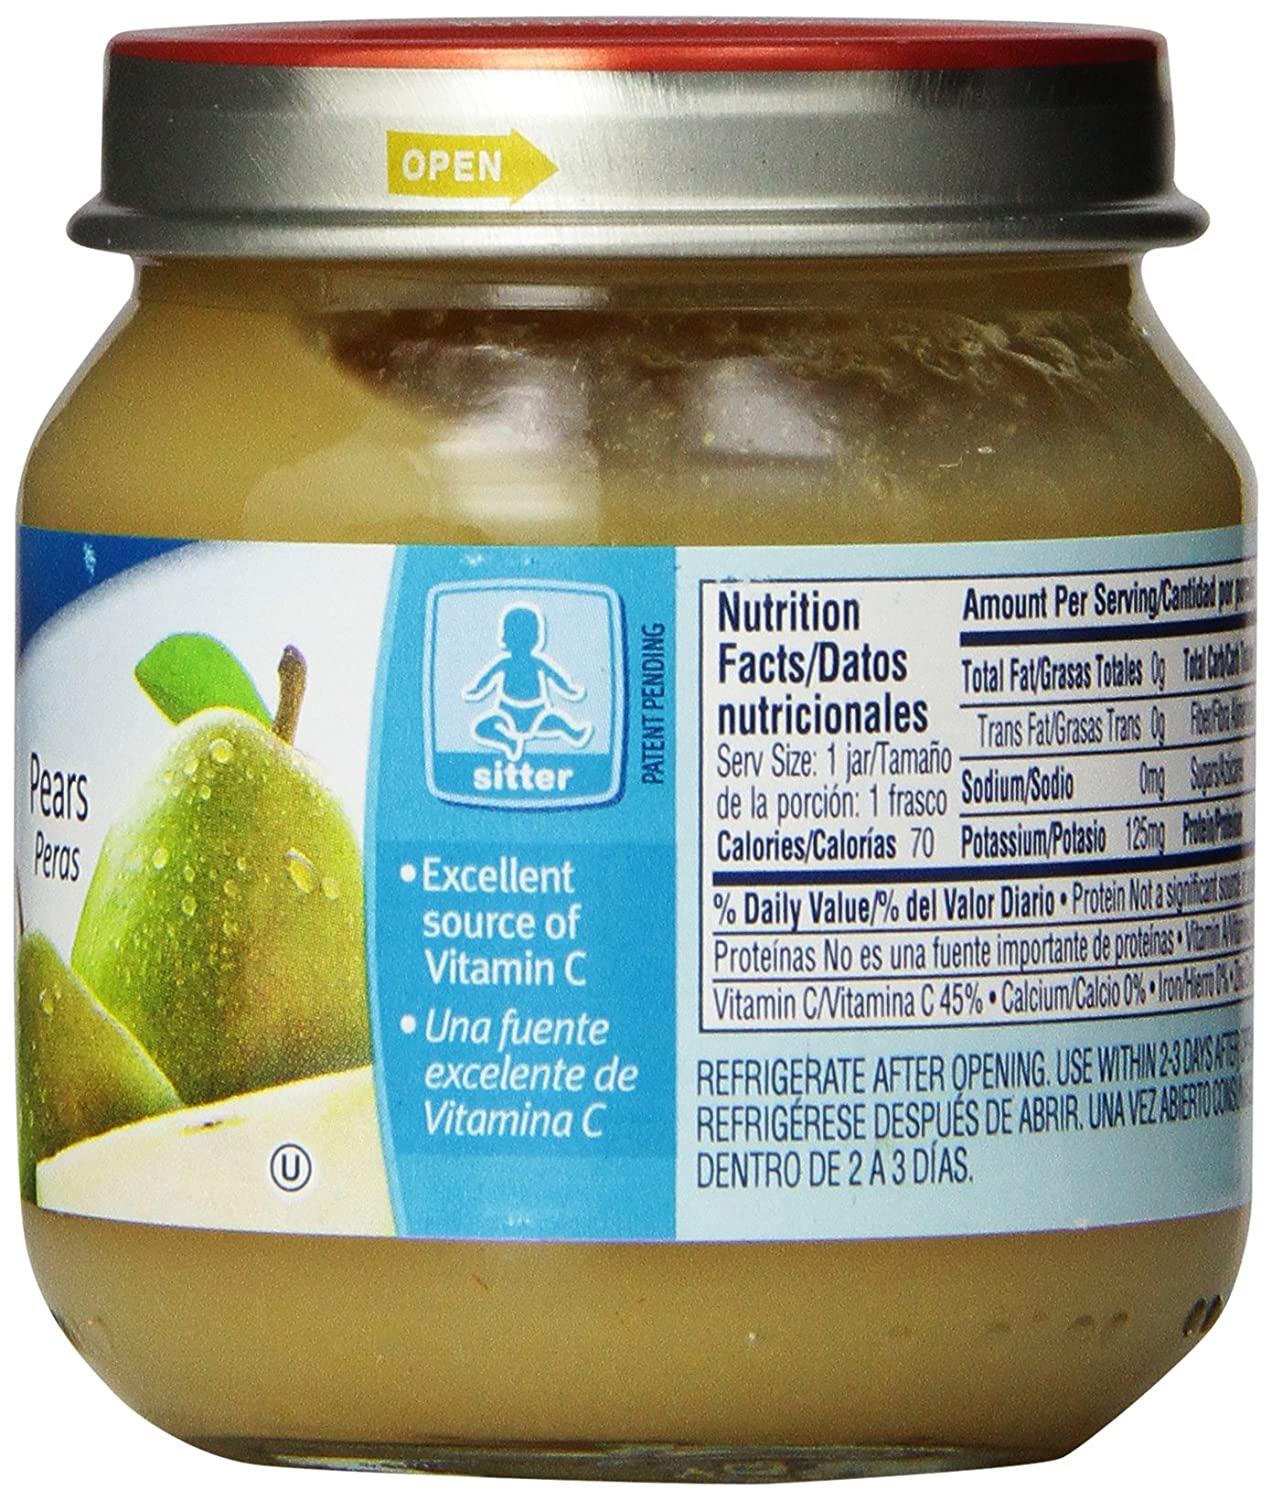 Gerber 2nd Foods Pears Puree, 4 Ounce (Pack of 12): Amazon.com: Grocery & Gourmet Food